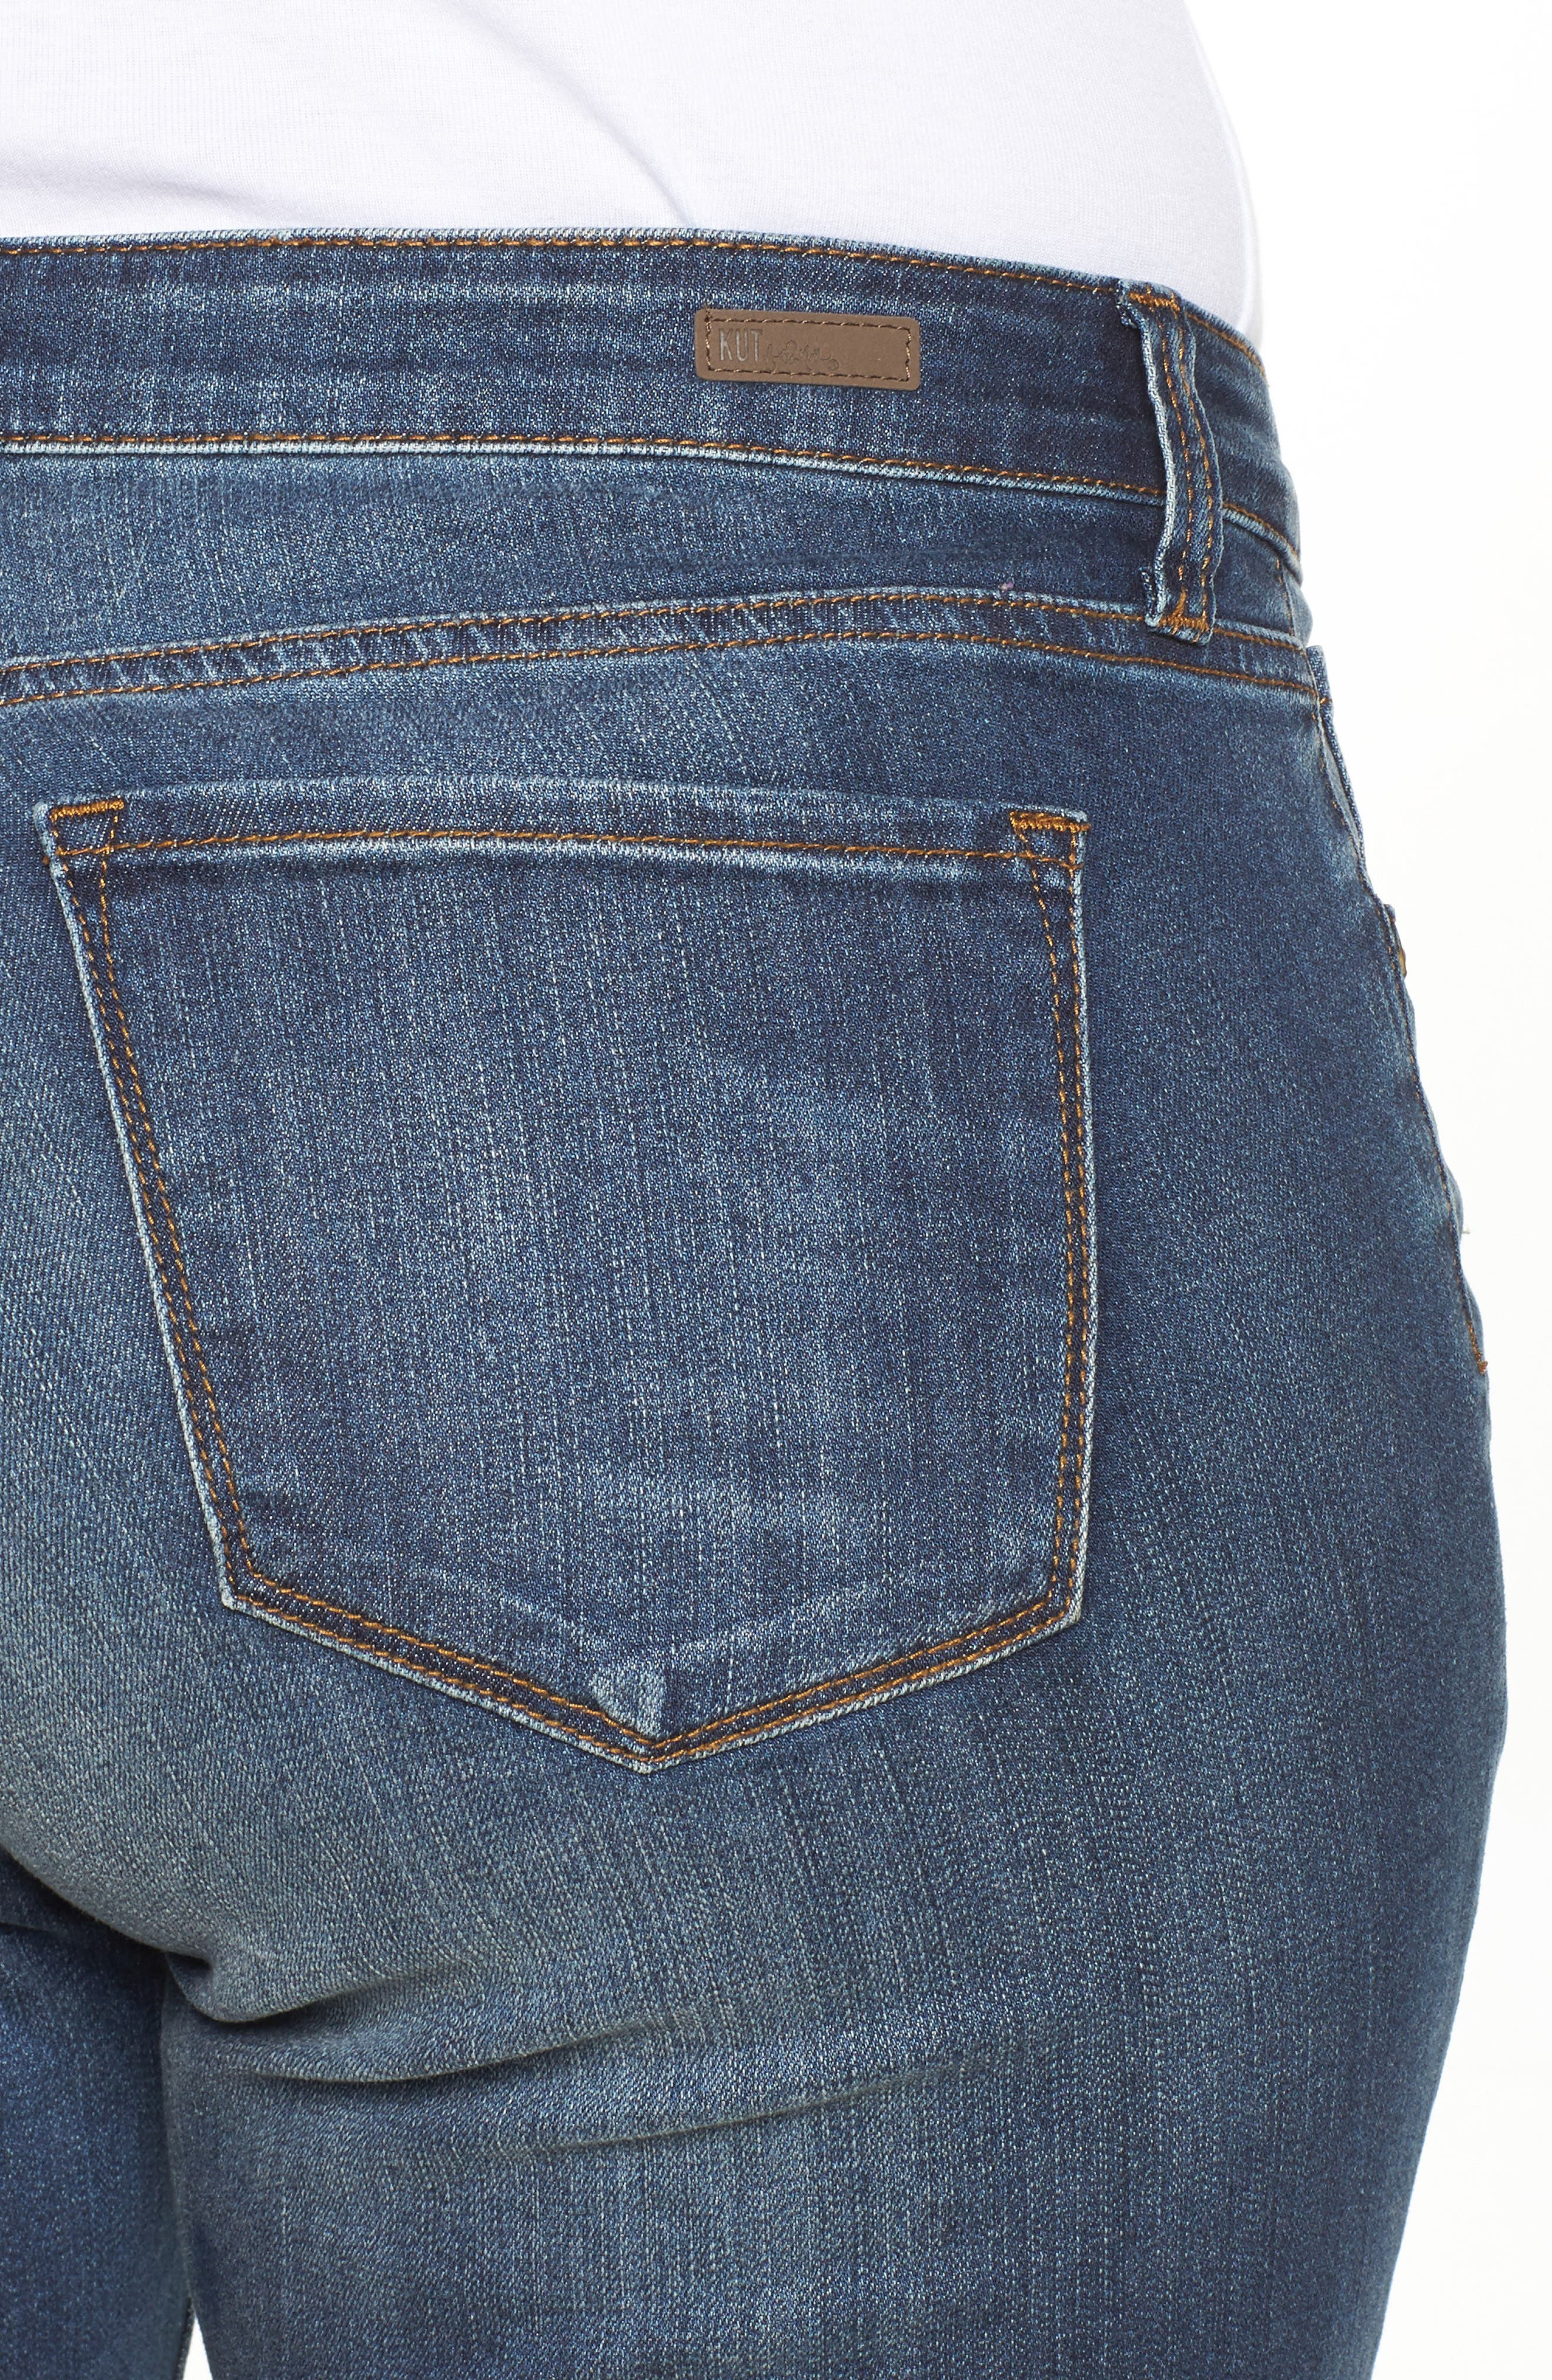 Alternate Image 4  - KUT from the Kloth Catherine Ripped Boyfriend Jeans (Allowing) (Plus Size)